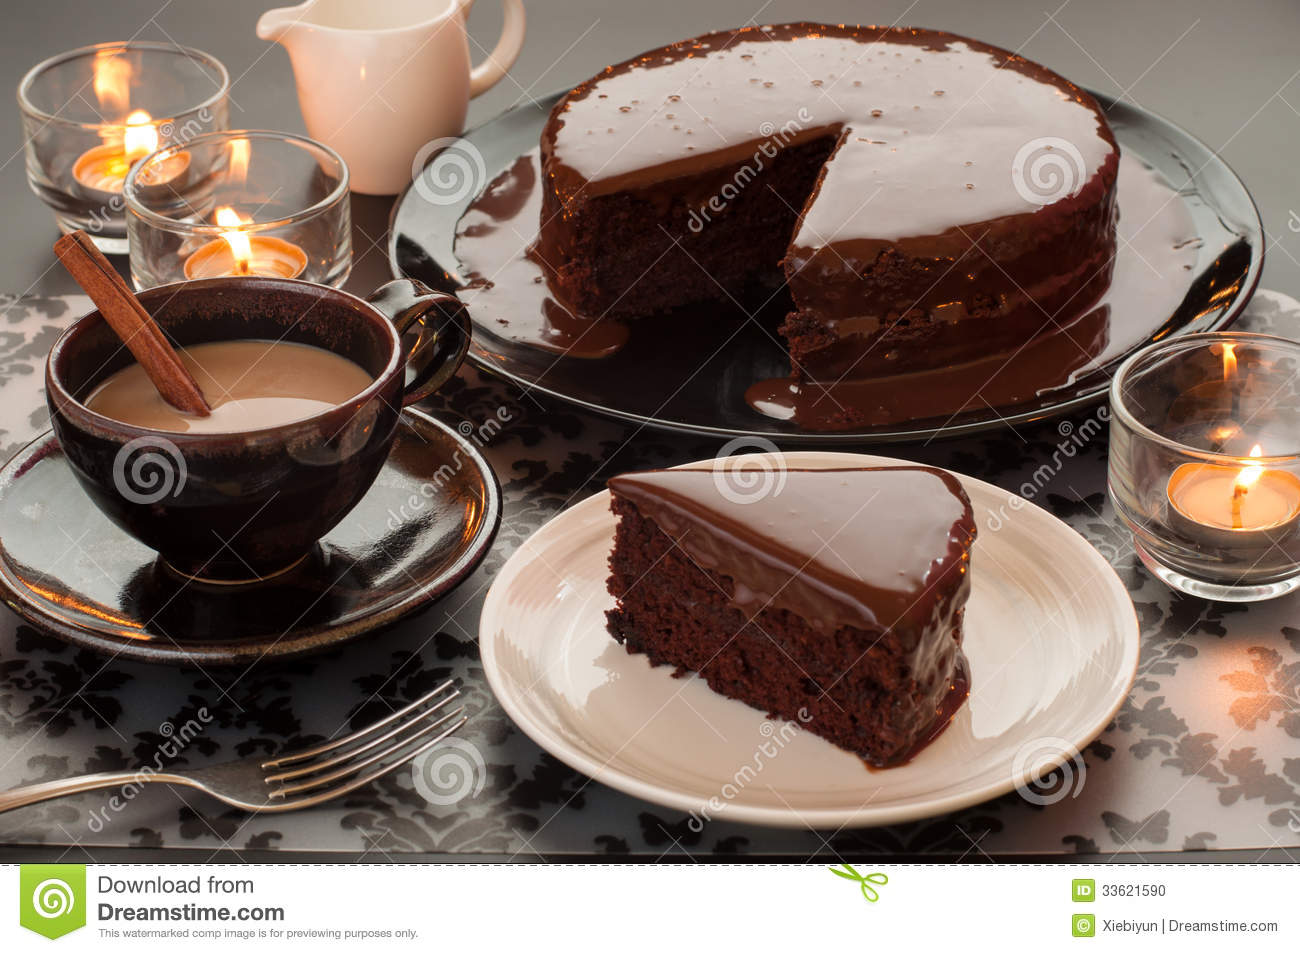 Chocolate Cake With Coffee Beans